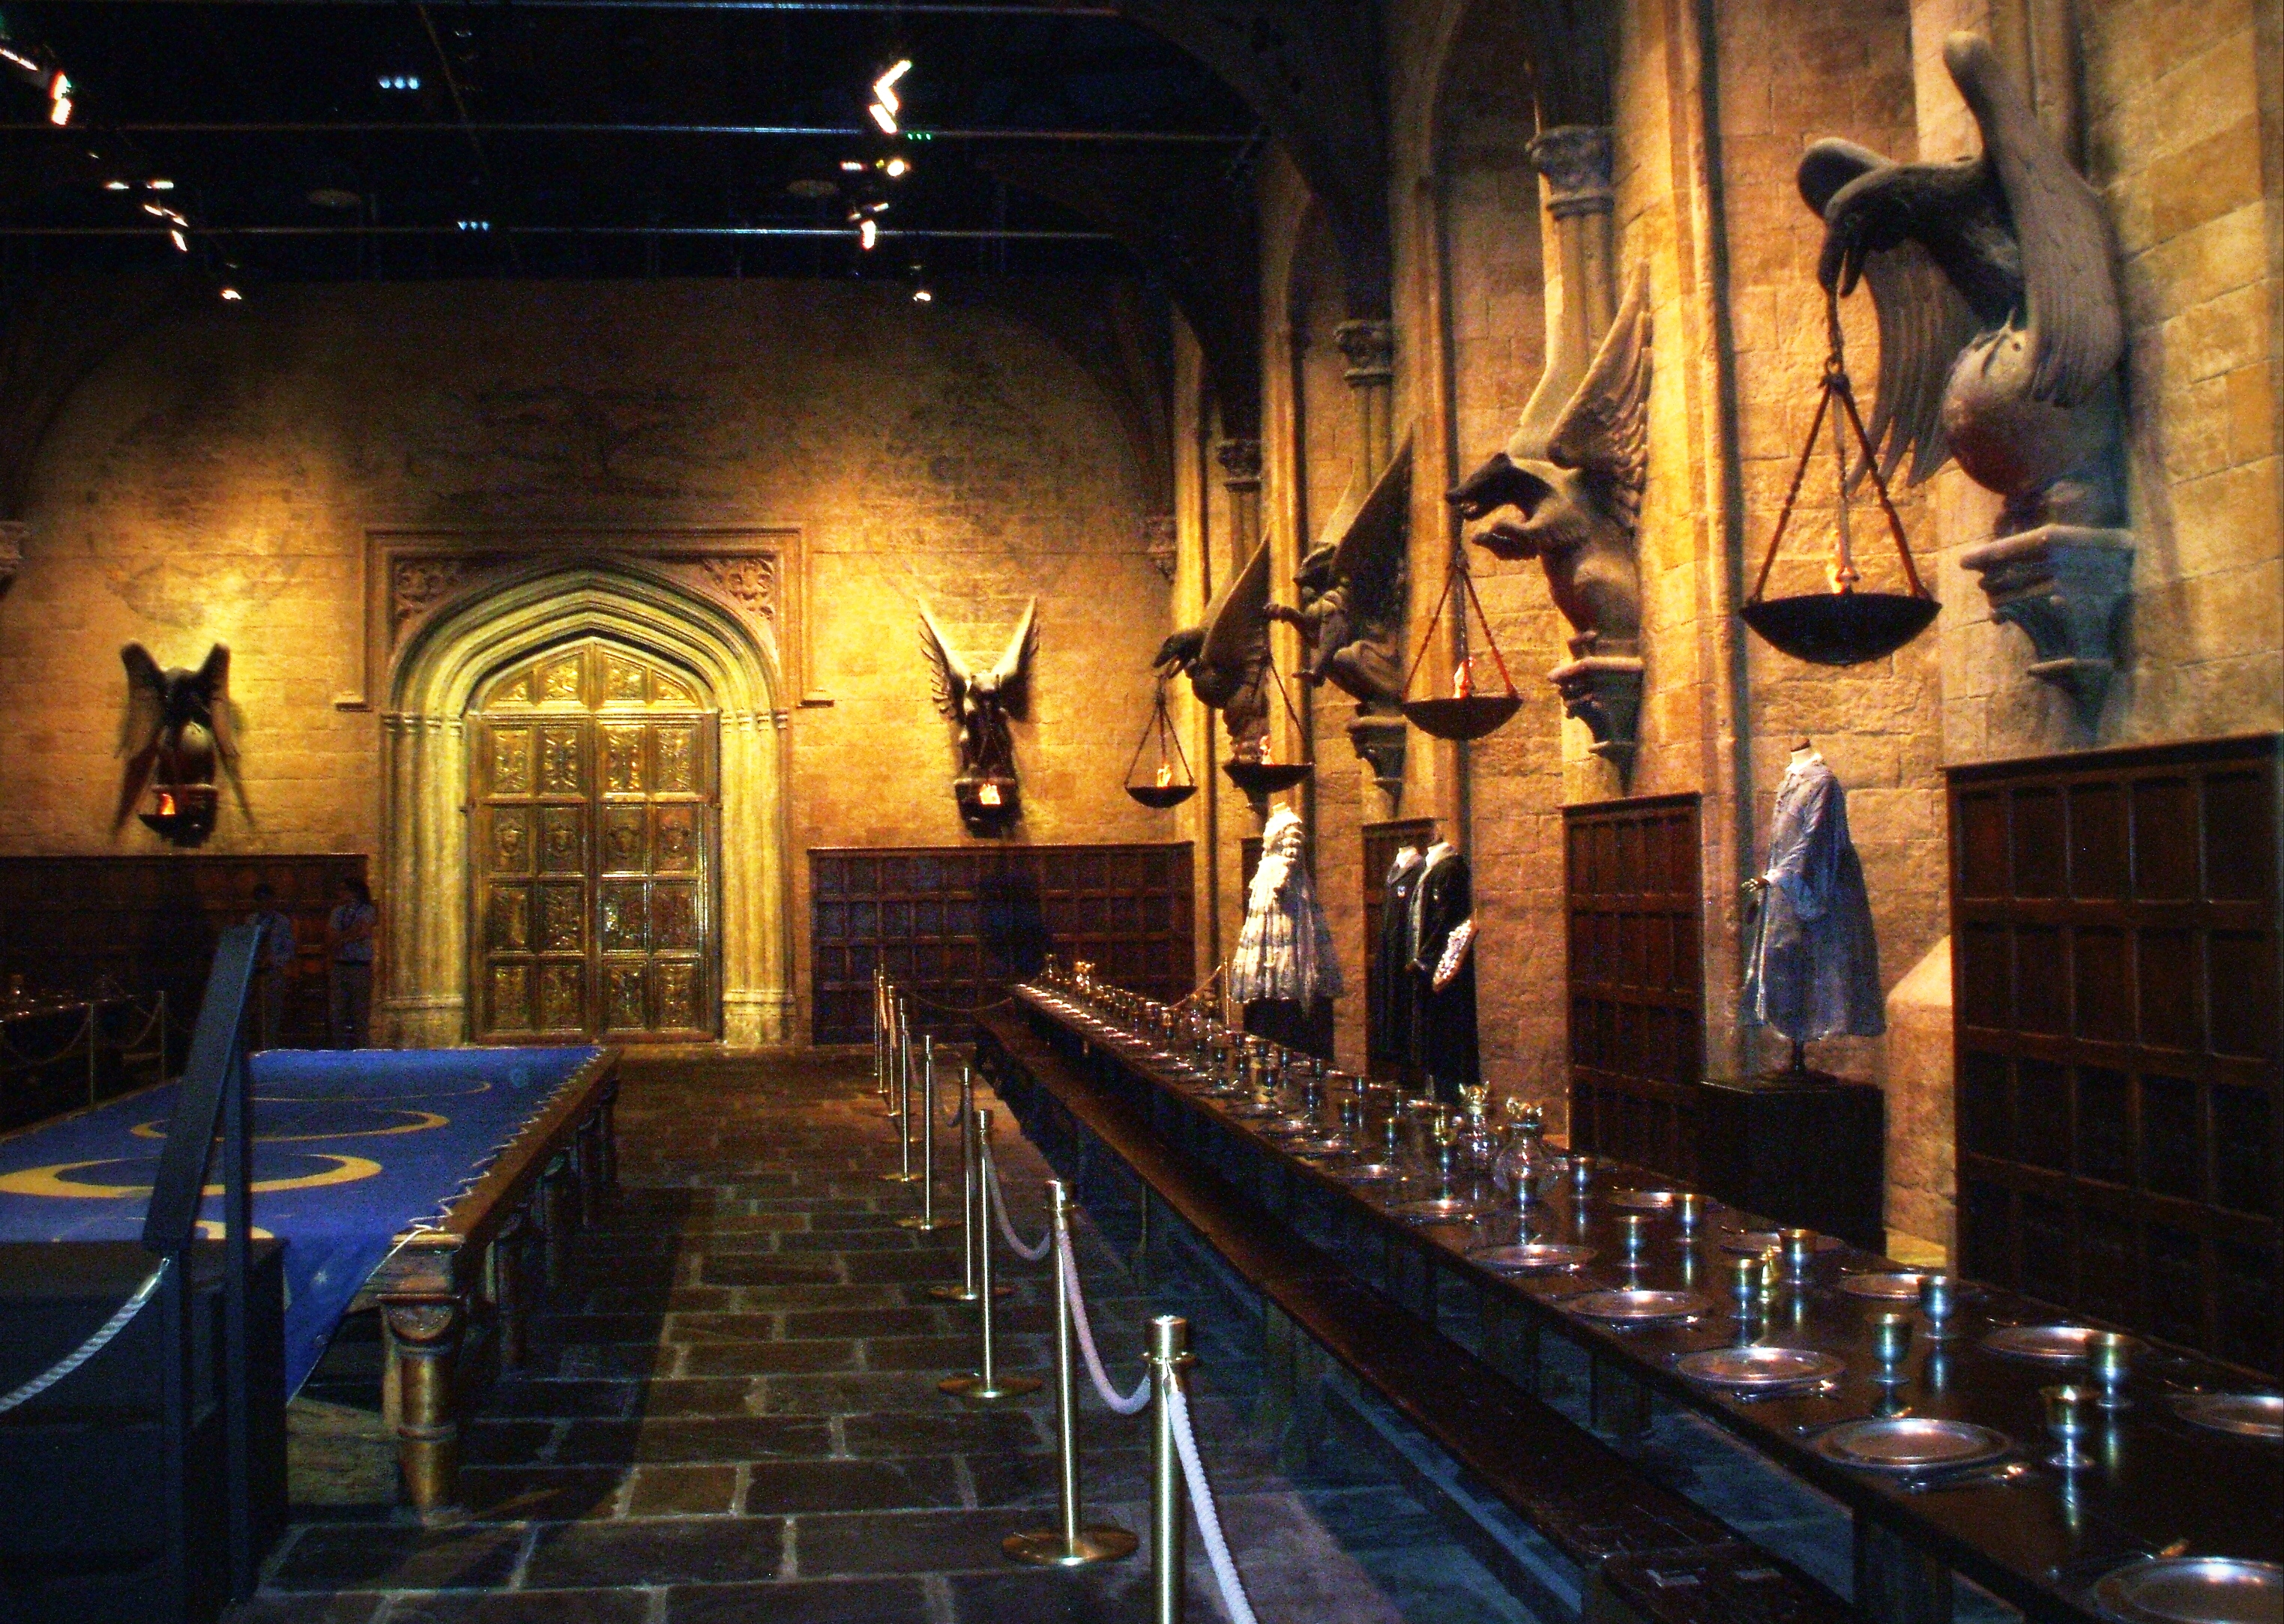 FileThe Great Hall Hogwartsjpg Wikimedia Commons